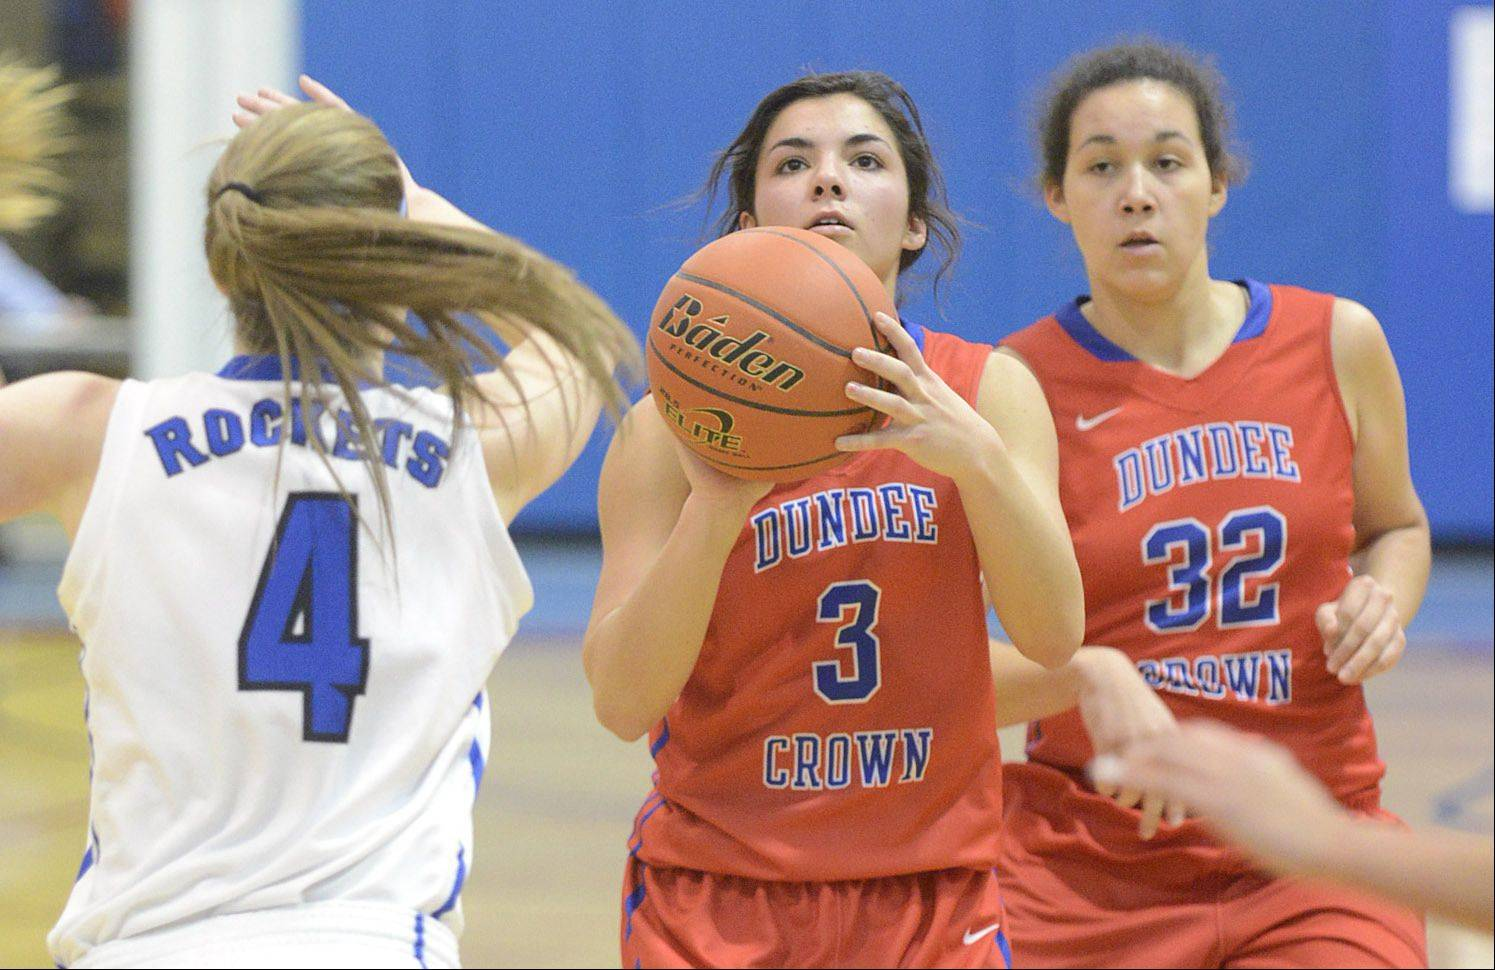 Burlington Central's Kayla Ross attempts to block a shot by Dundee-Crown's Francesca Scarpelli in the second quarter on Friday, December 27. Dundee-Crown's Jesania Laboy on right.